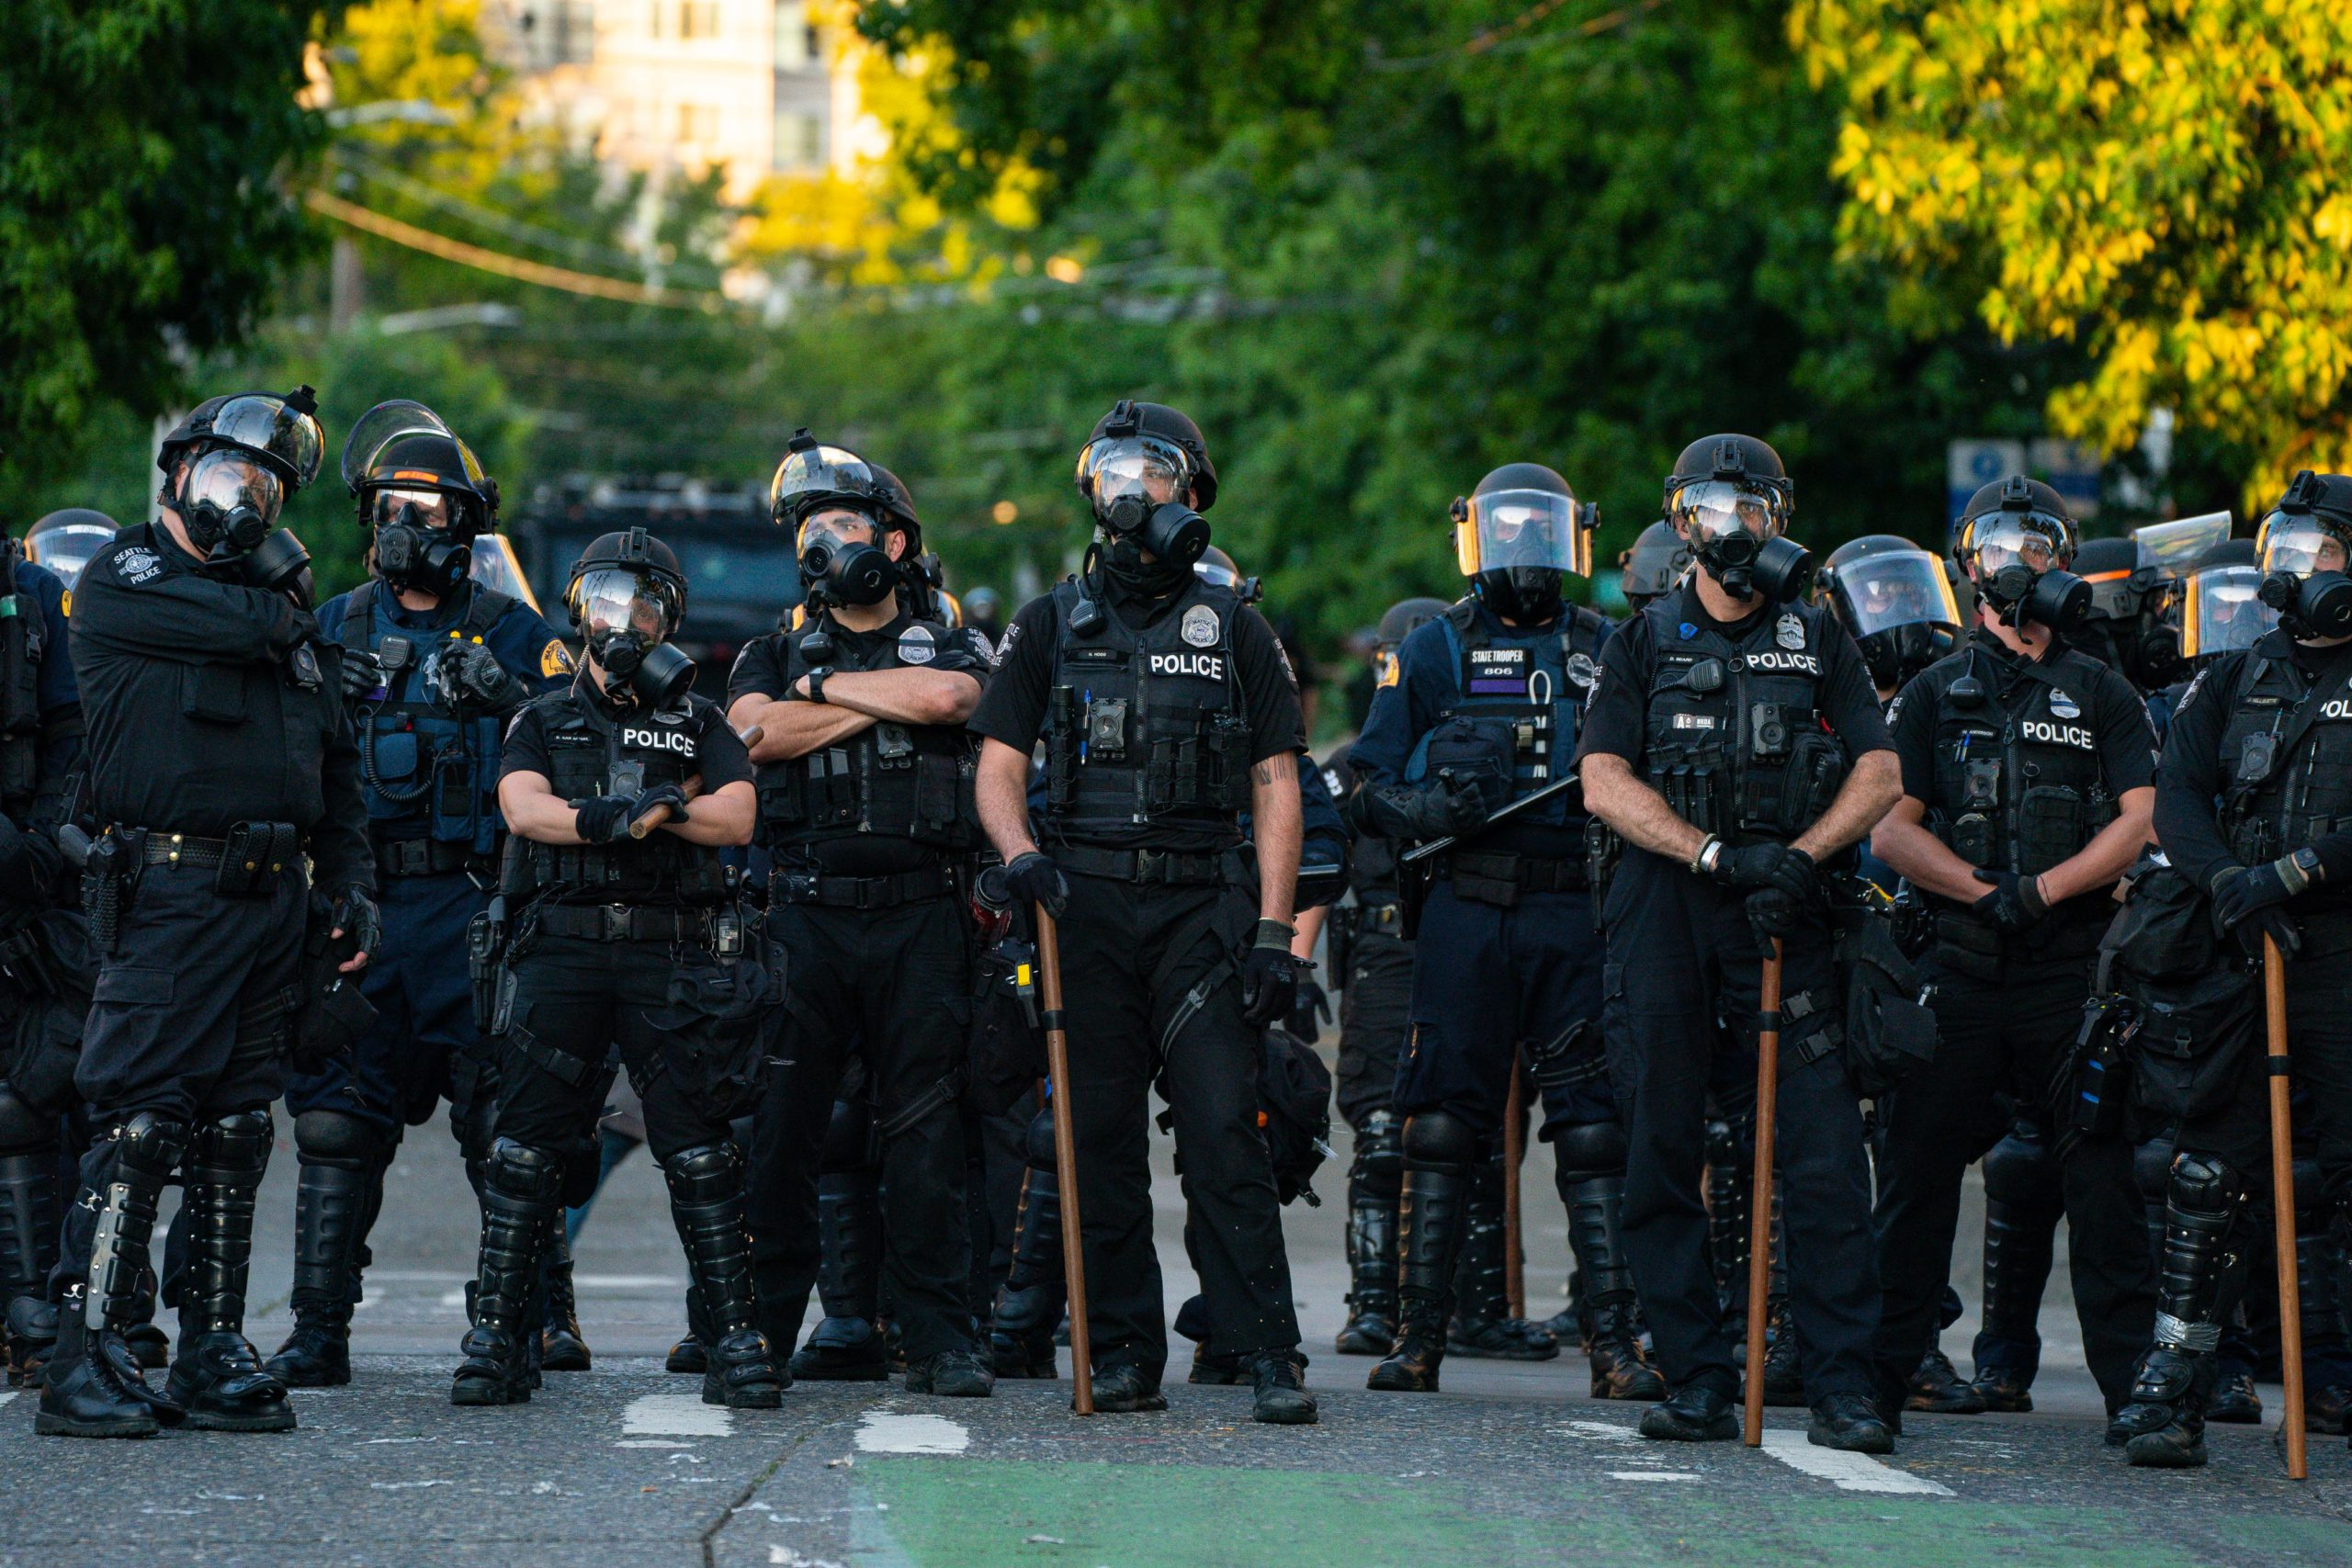 Police block a road during protests near the Seattle Police East Precinct on July 26, 2020 in Seattle, Washington. (David Ryder/Getty Images)